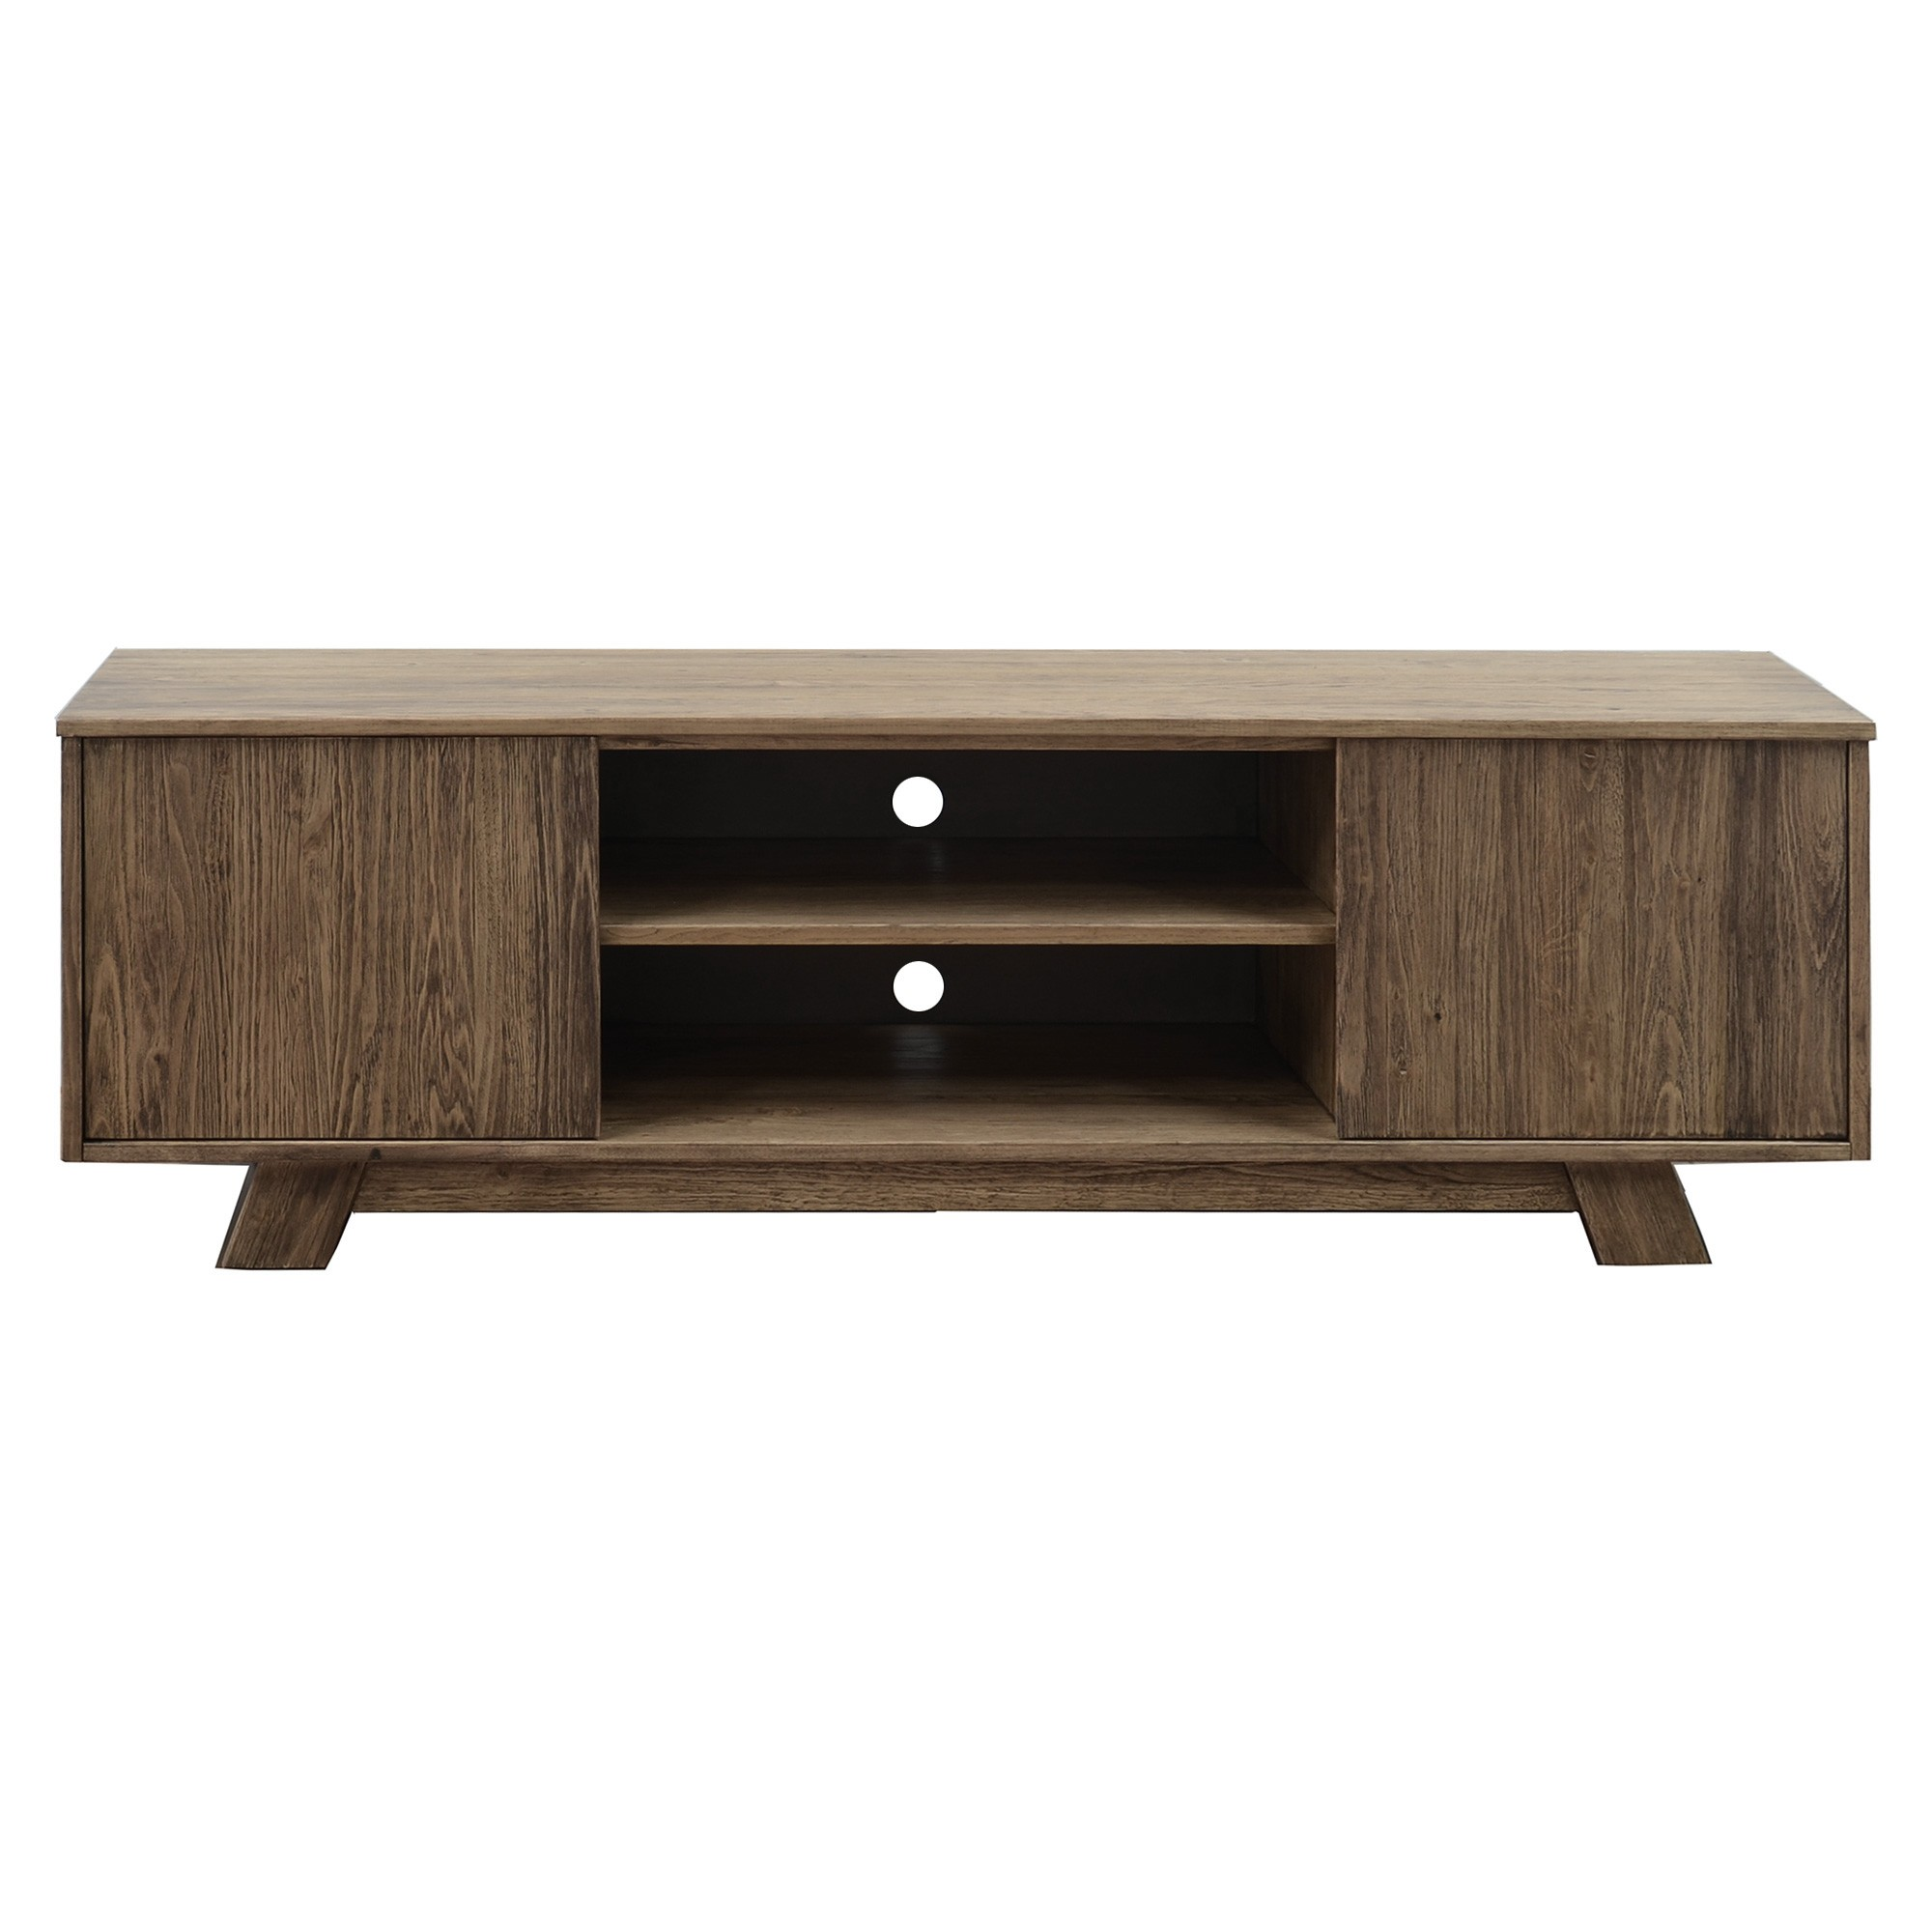 Harold Mountain Ash Timber 2 Door TV Unit, 180cm, Smoke